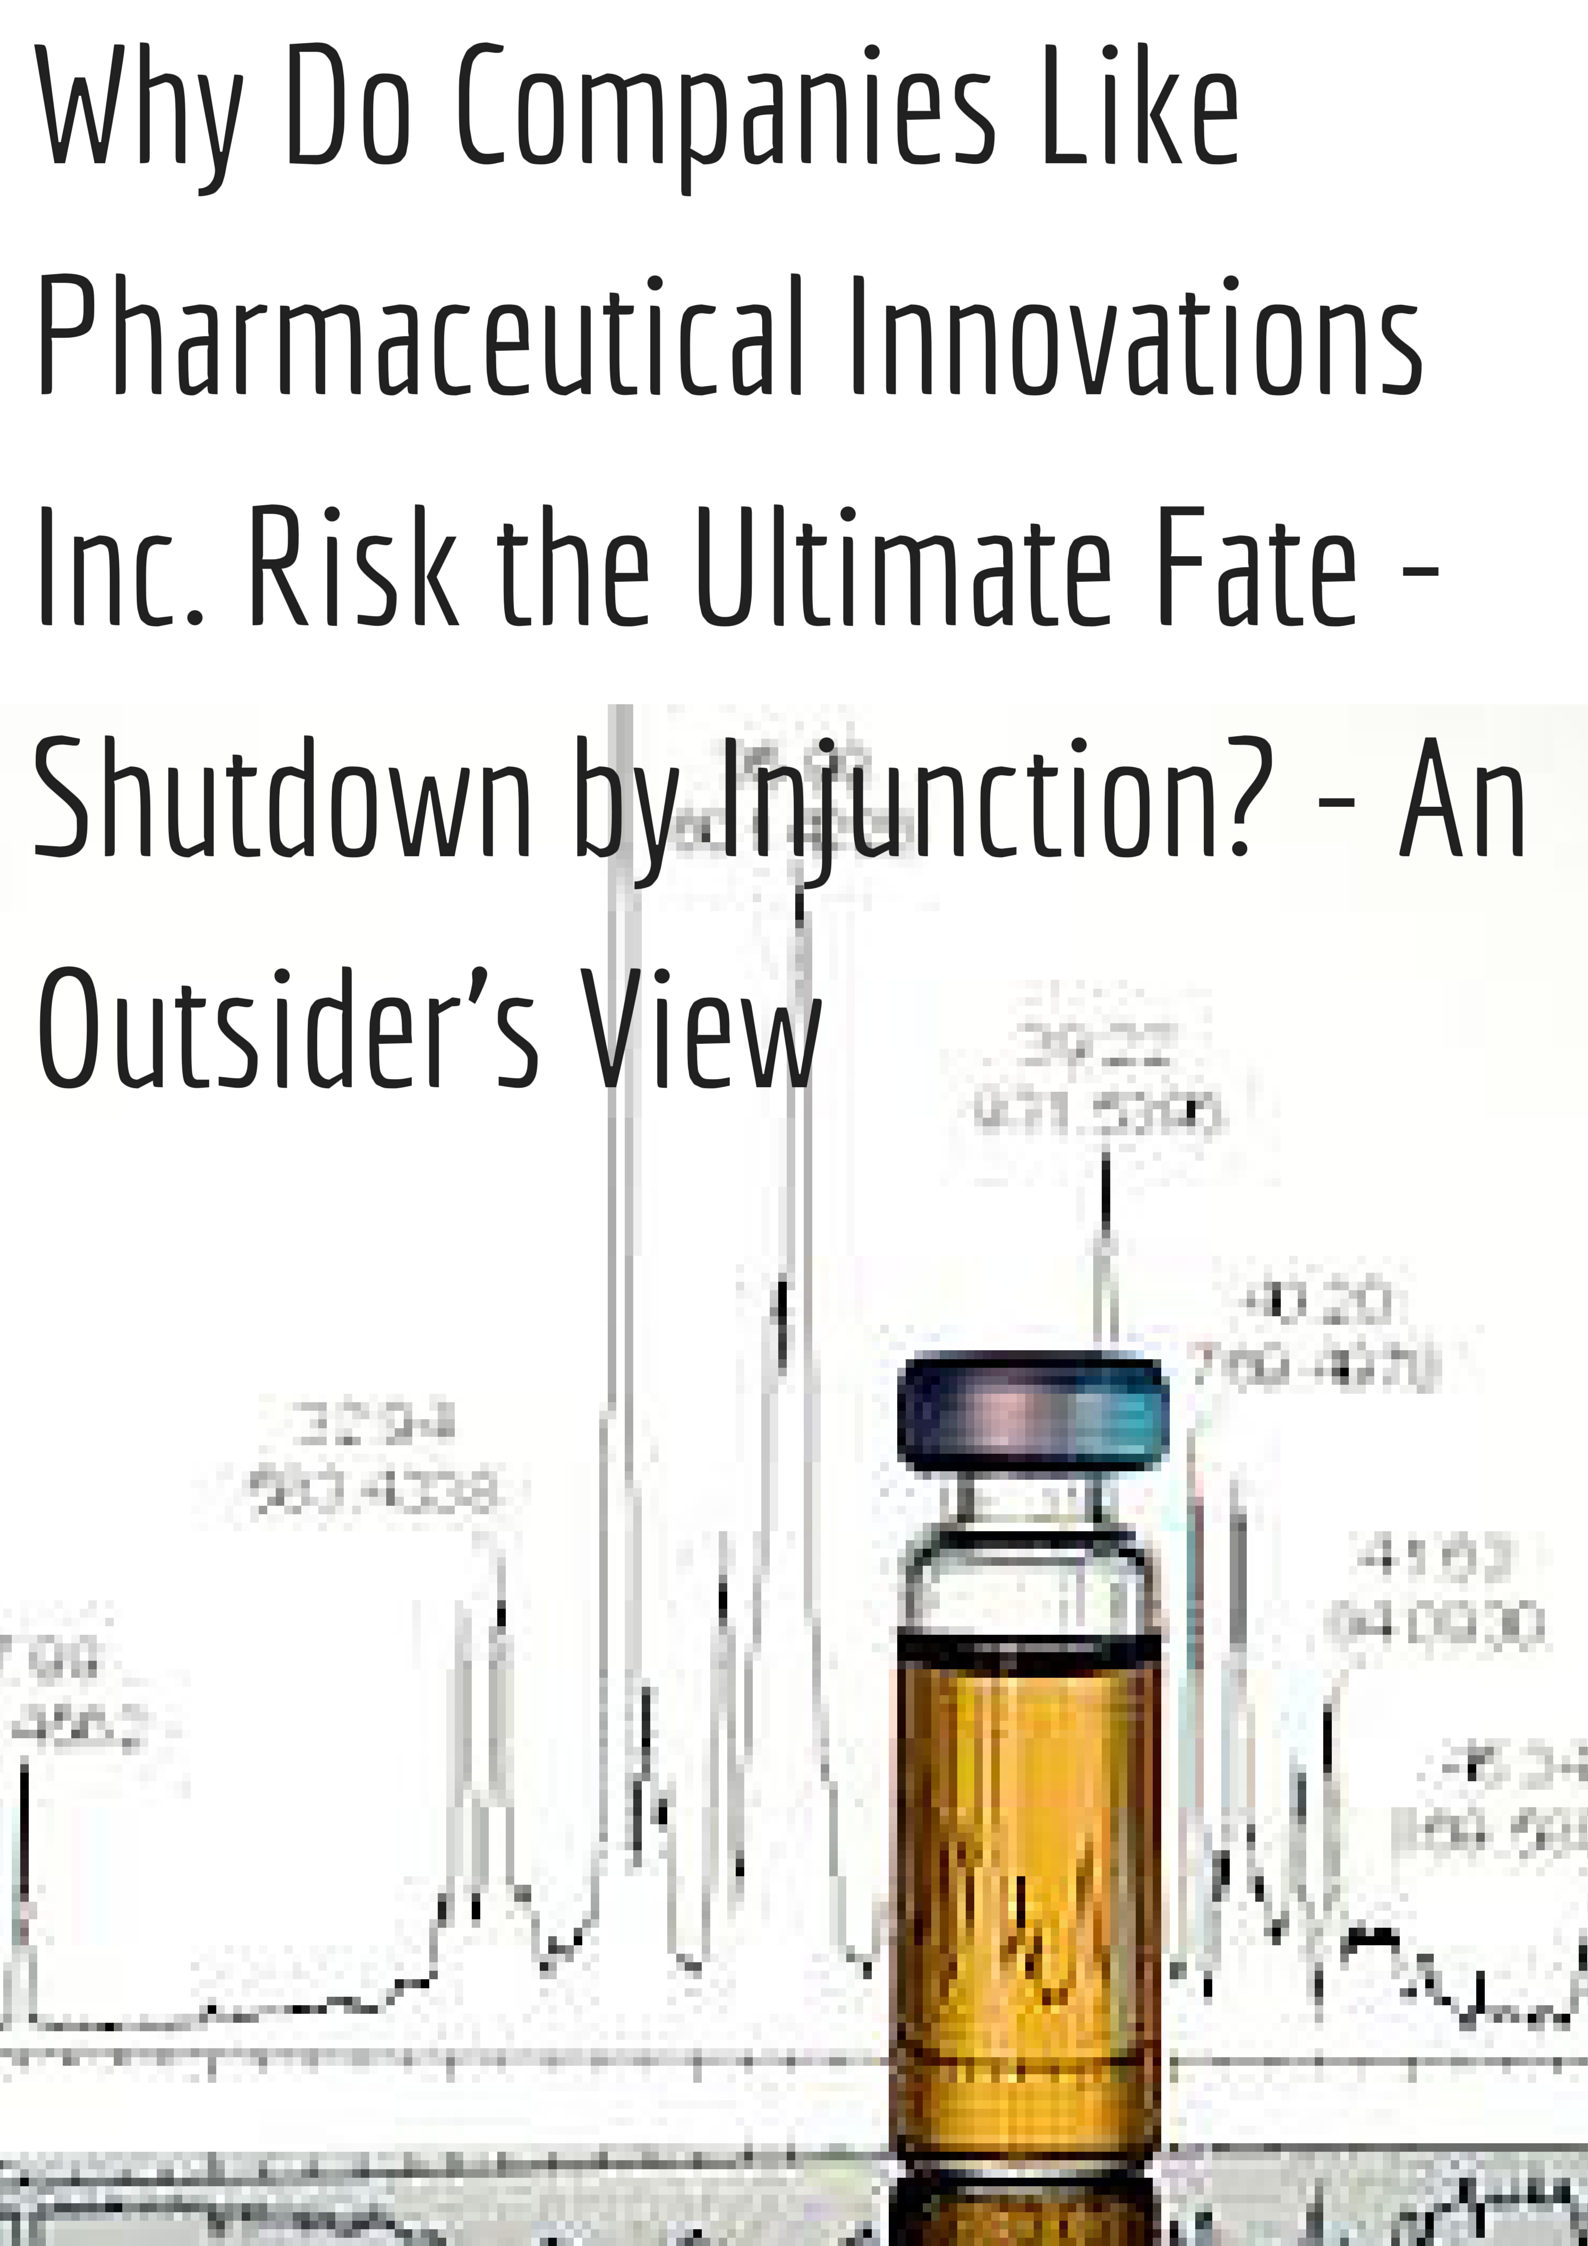 Why Do Companies Like Pharmaceutical Innovations Inc. Risk